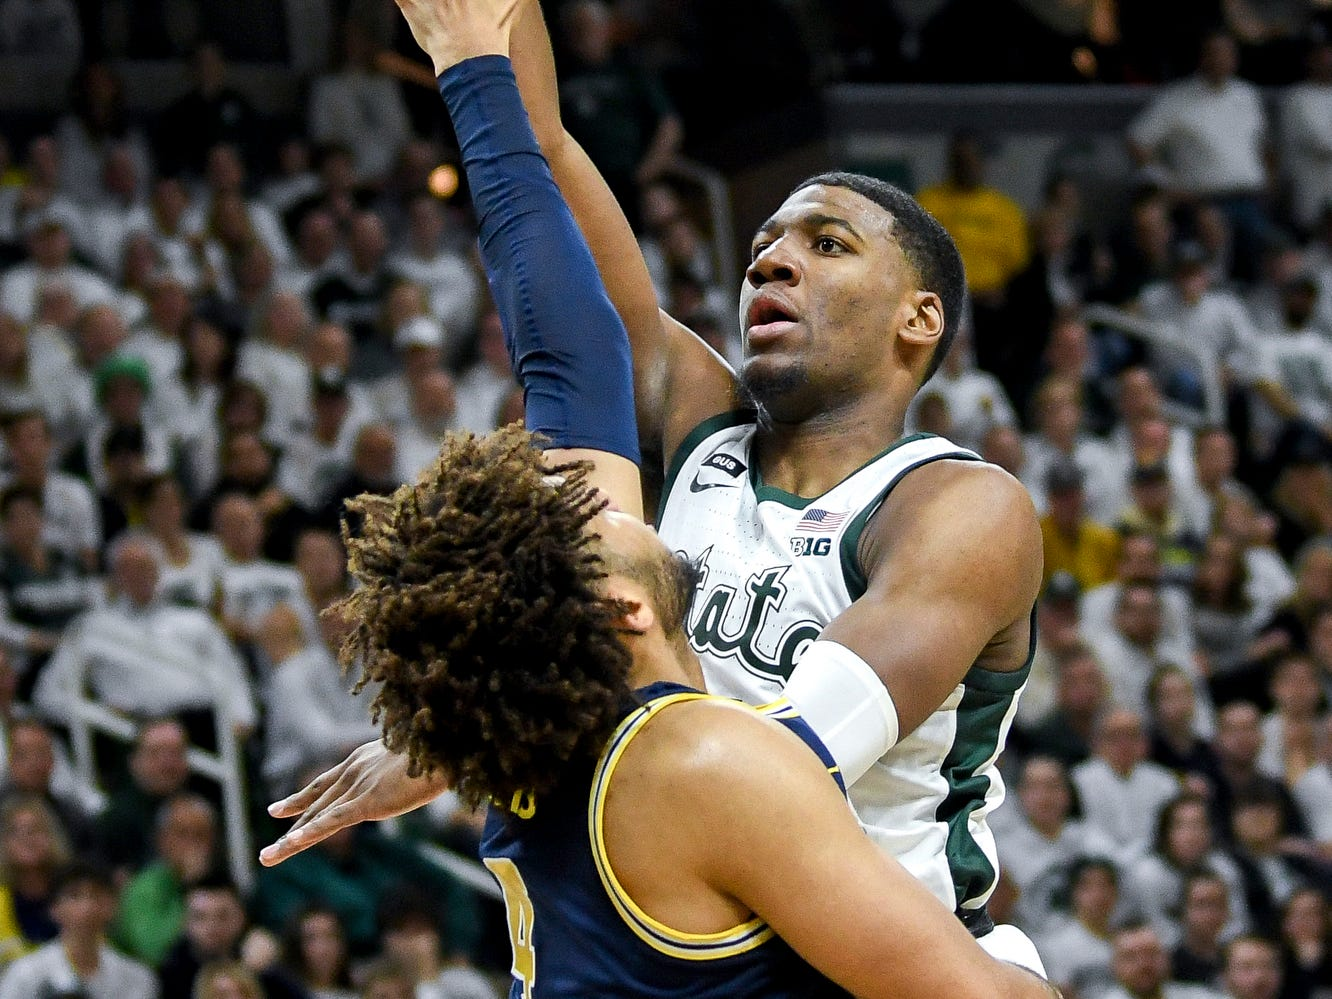 Michigan State's Aaron Henry, right, scores over Michigan's Isaiah Livers during the second half on Saturday, March 9, 2019, at the Breslin Center in East Lansing.